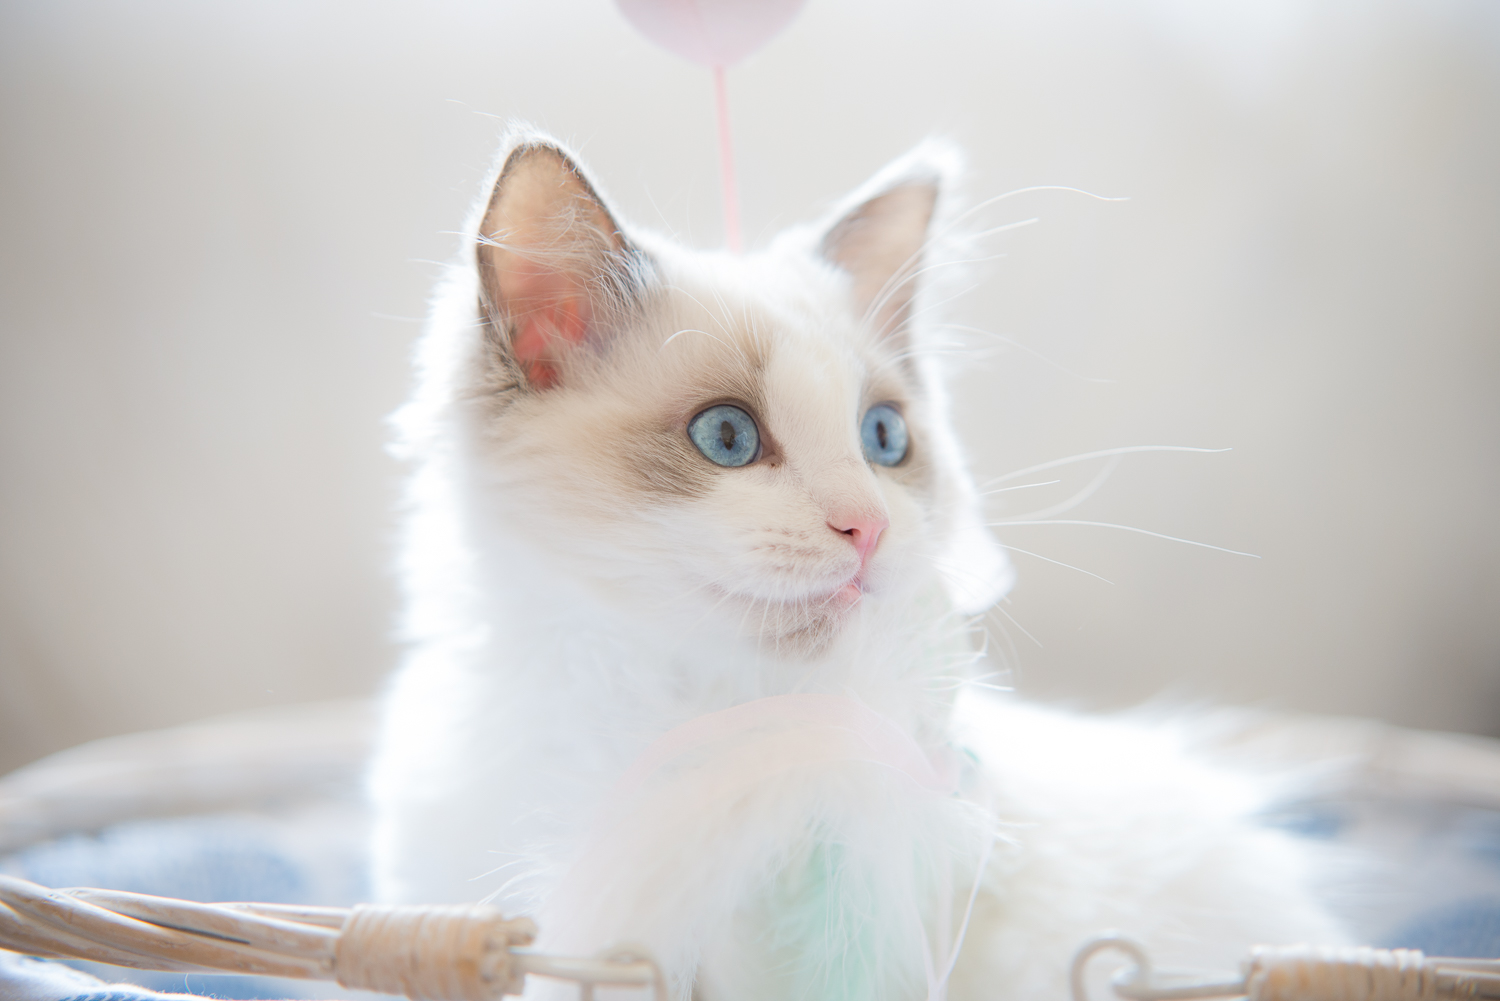 Those super cute baby blue eyes. Although all cats are born with blue eyes, Ragdoll cats keep their baby blues for life.